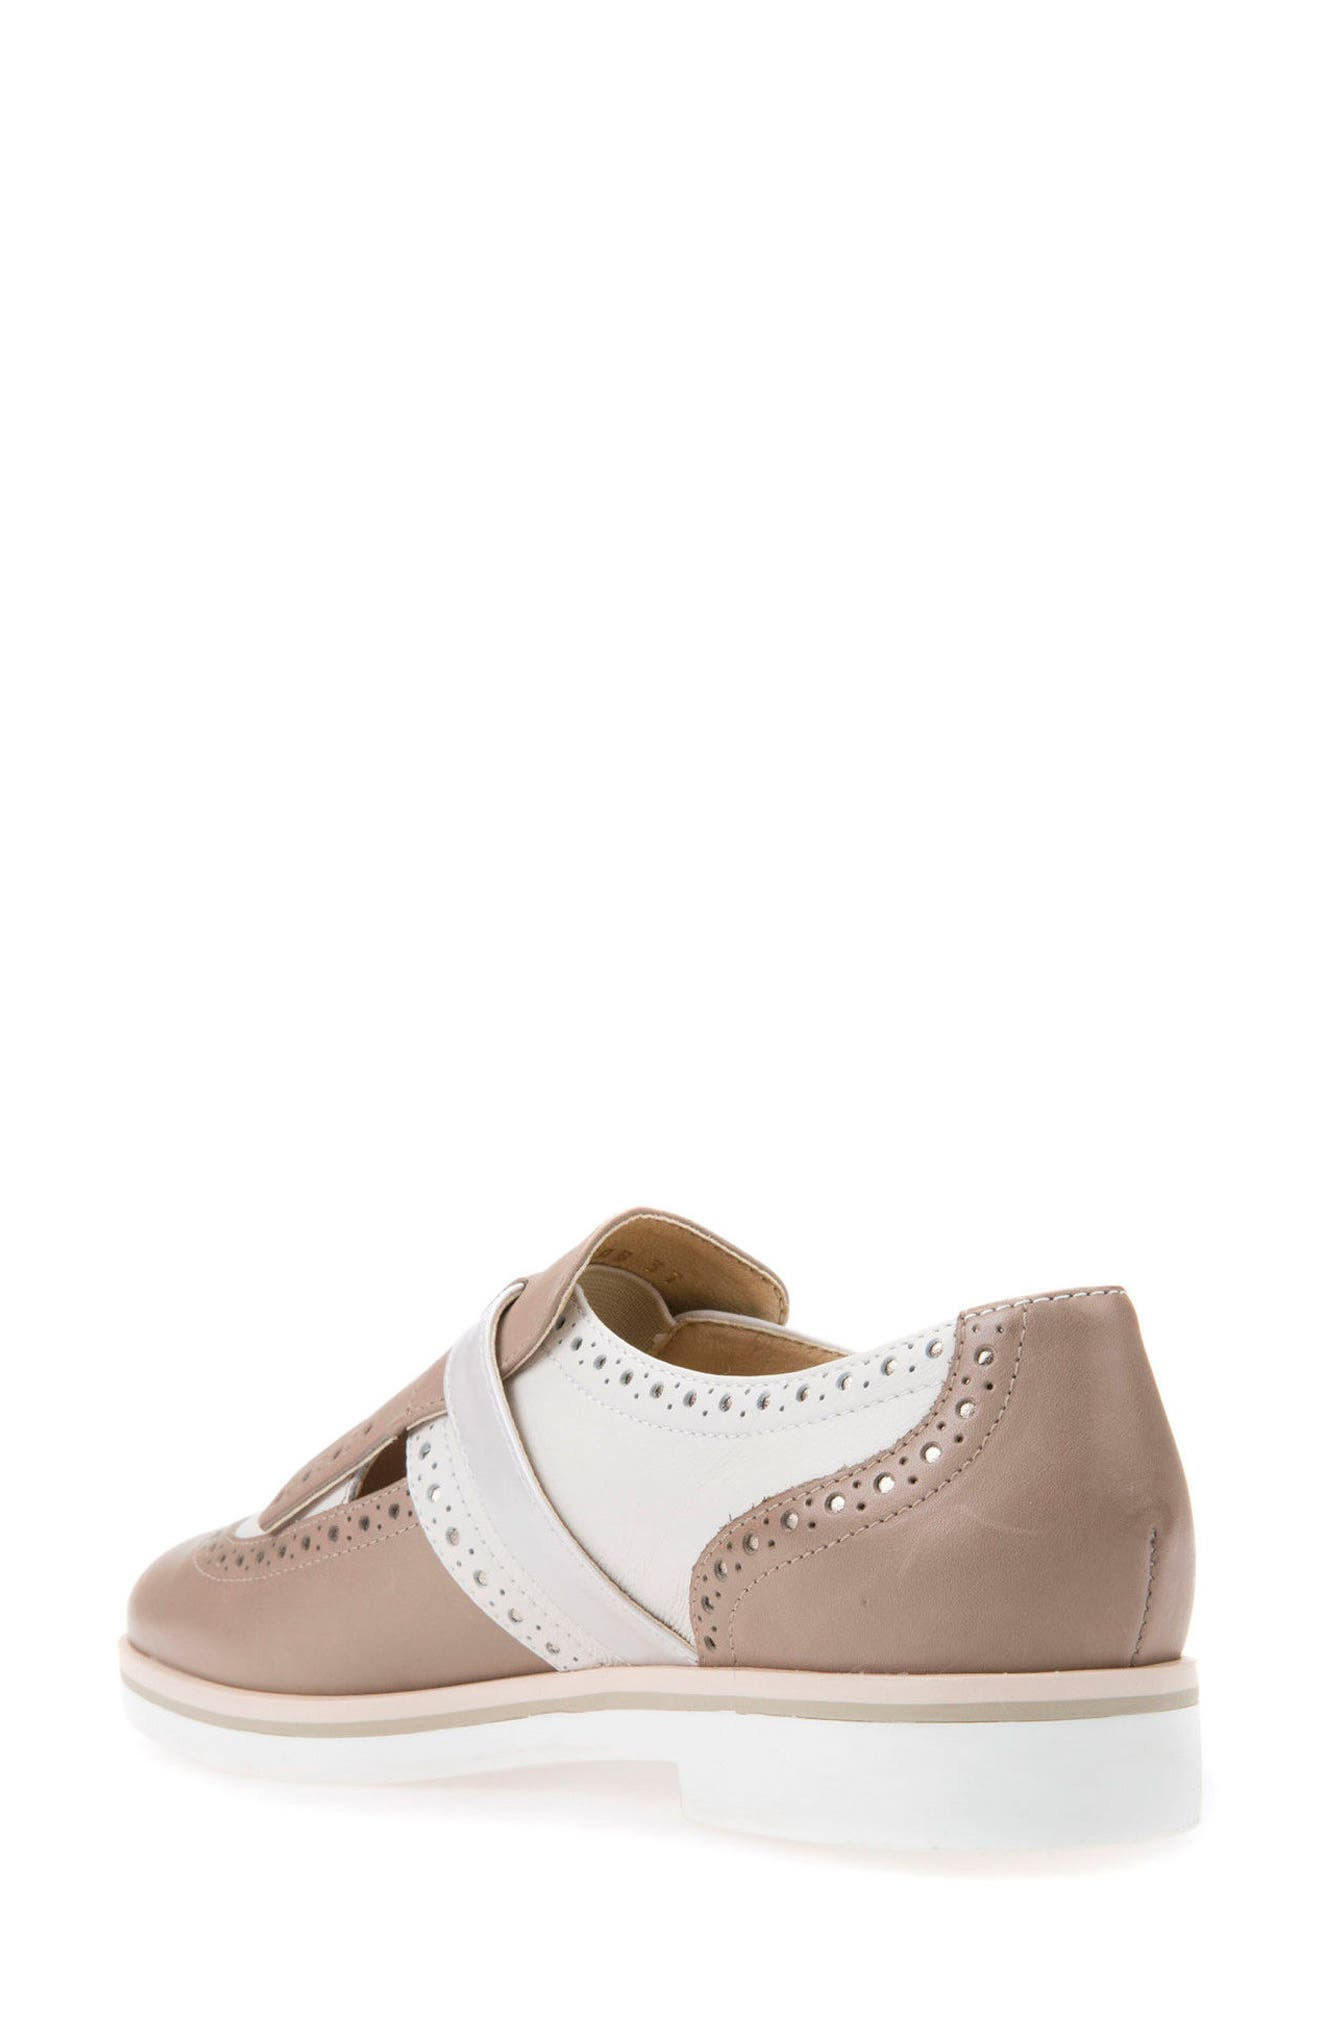 Janalee Cutout Loafer,                             Alternate thumbnail 2, color,                             Sand Leather